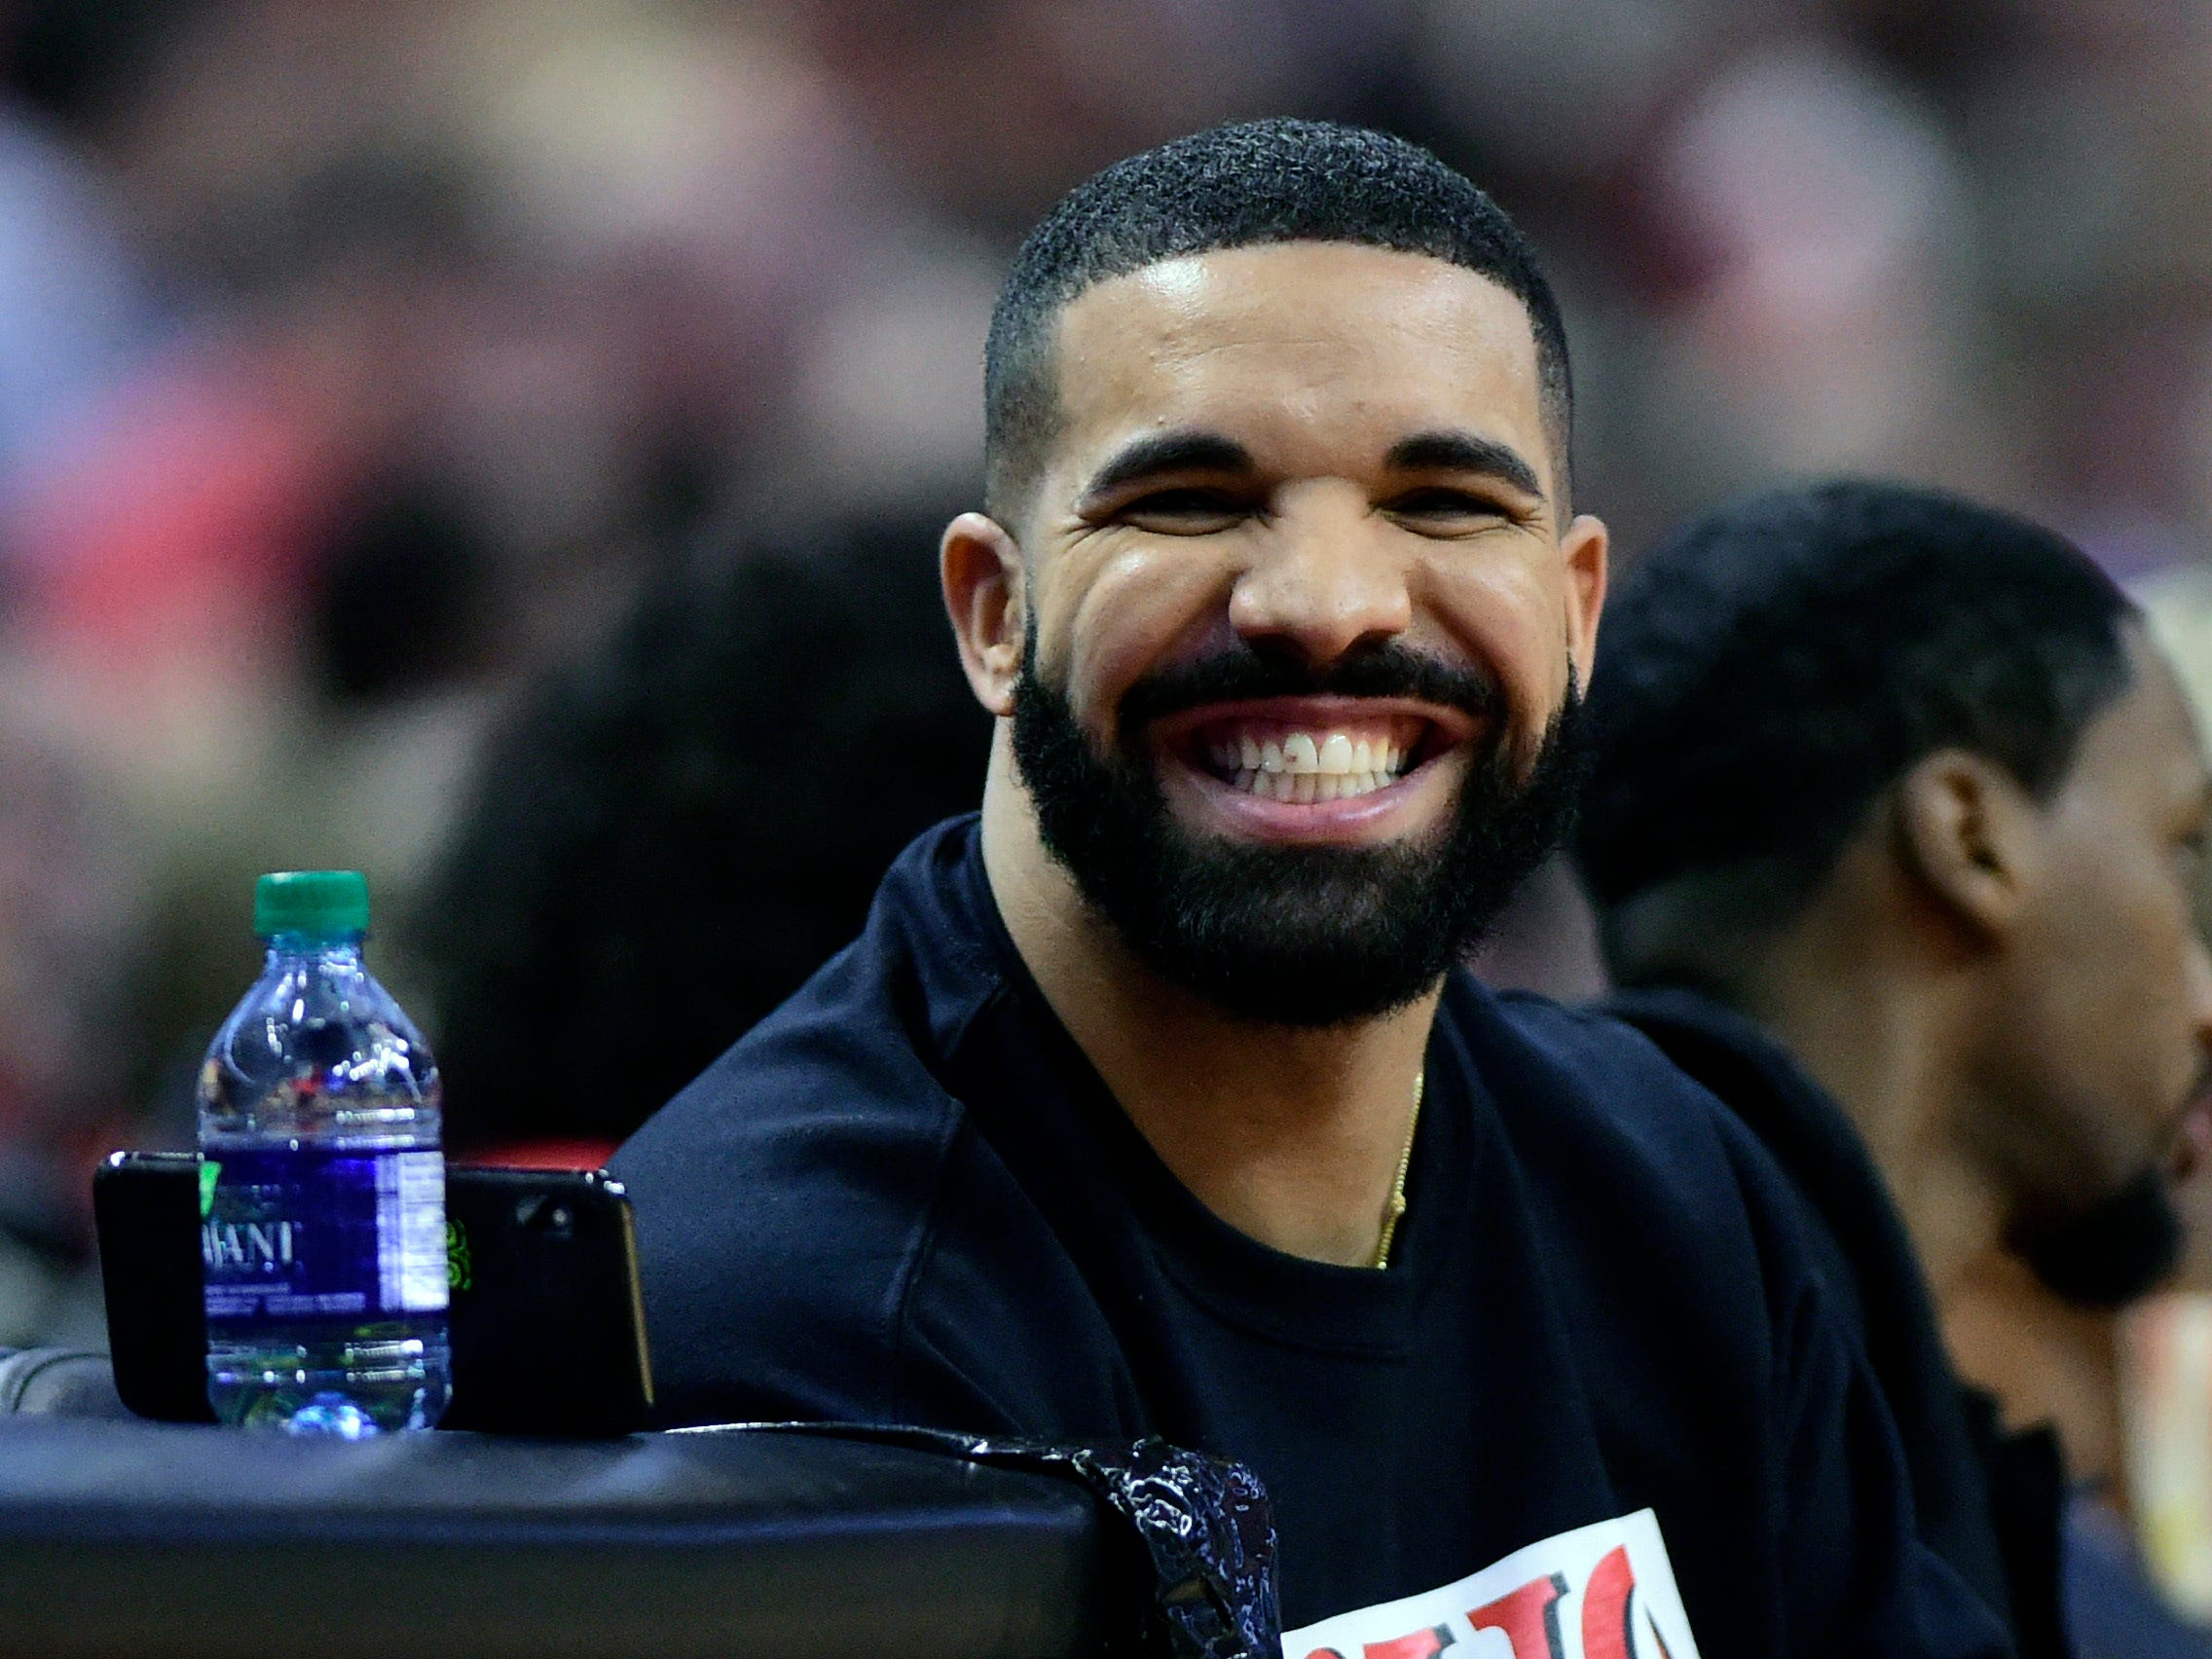 April 23: Drake smiles as he sits courtside during Game 5 between the Raptors and Magic in Toronto.